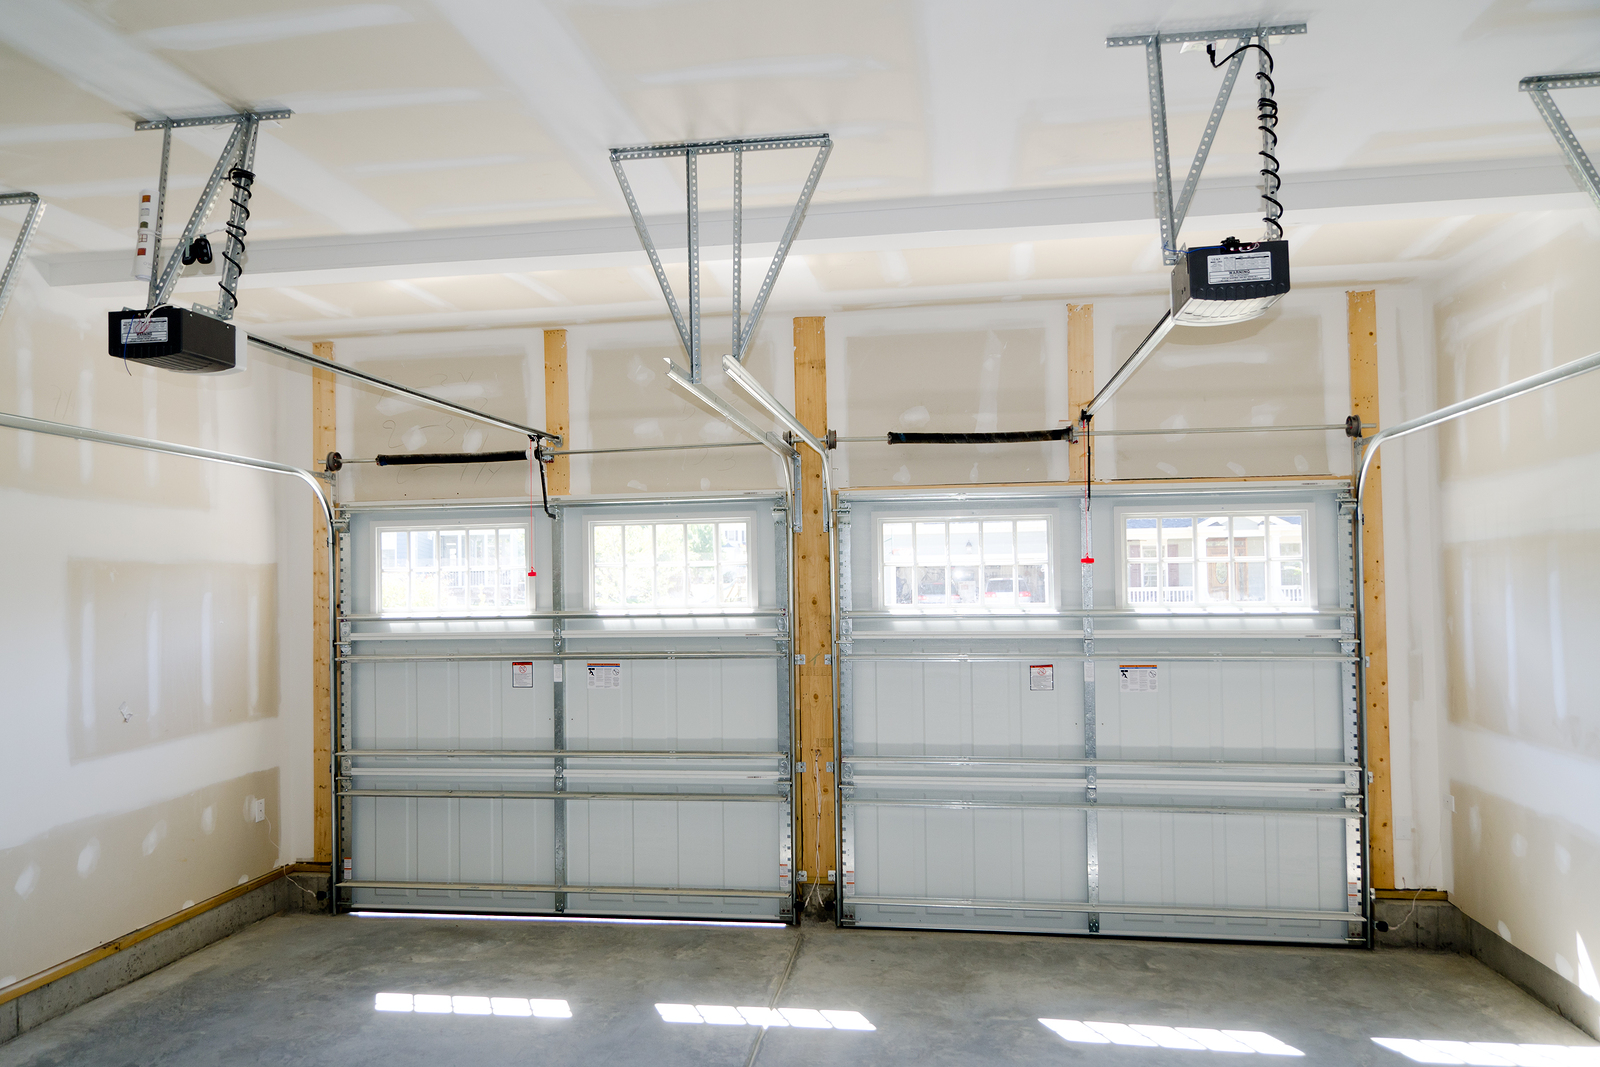 Top 10 Security And Safety Hints For Garage Doors